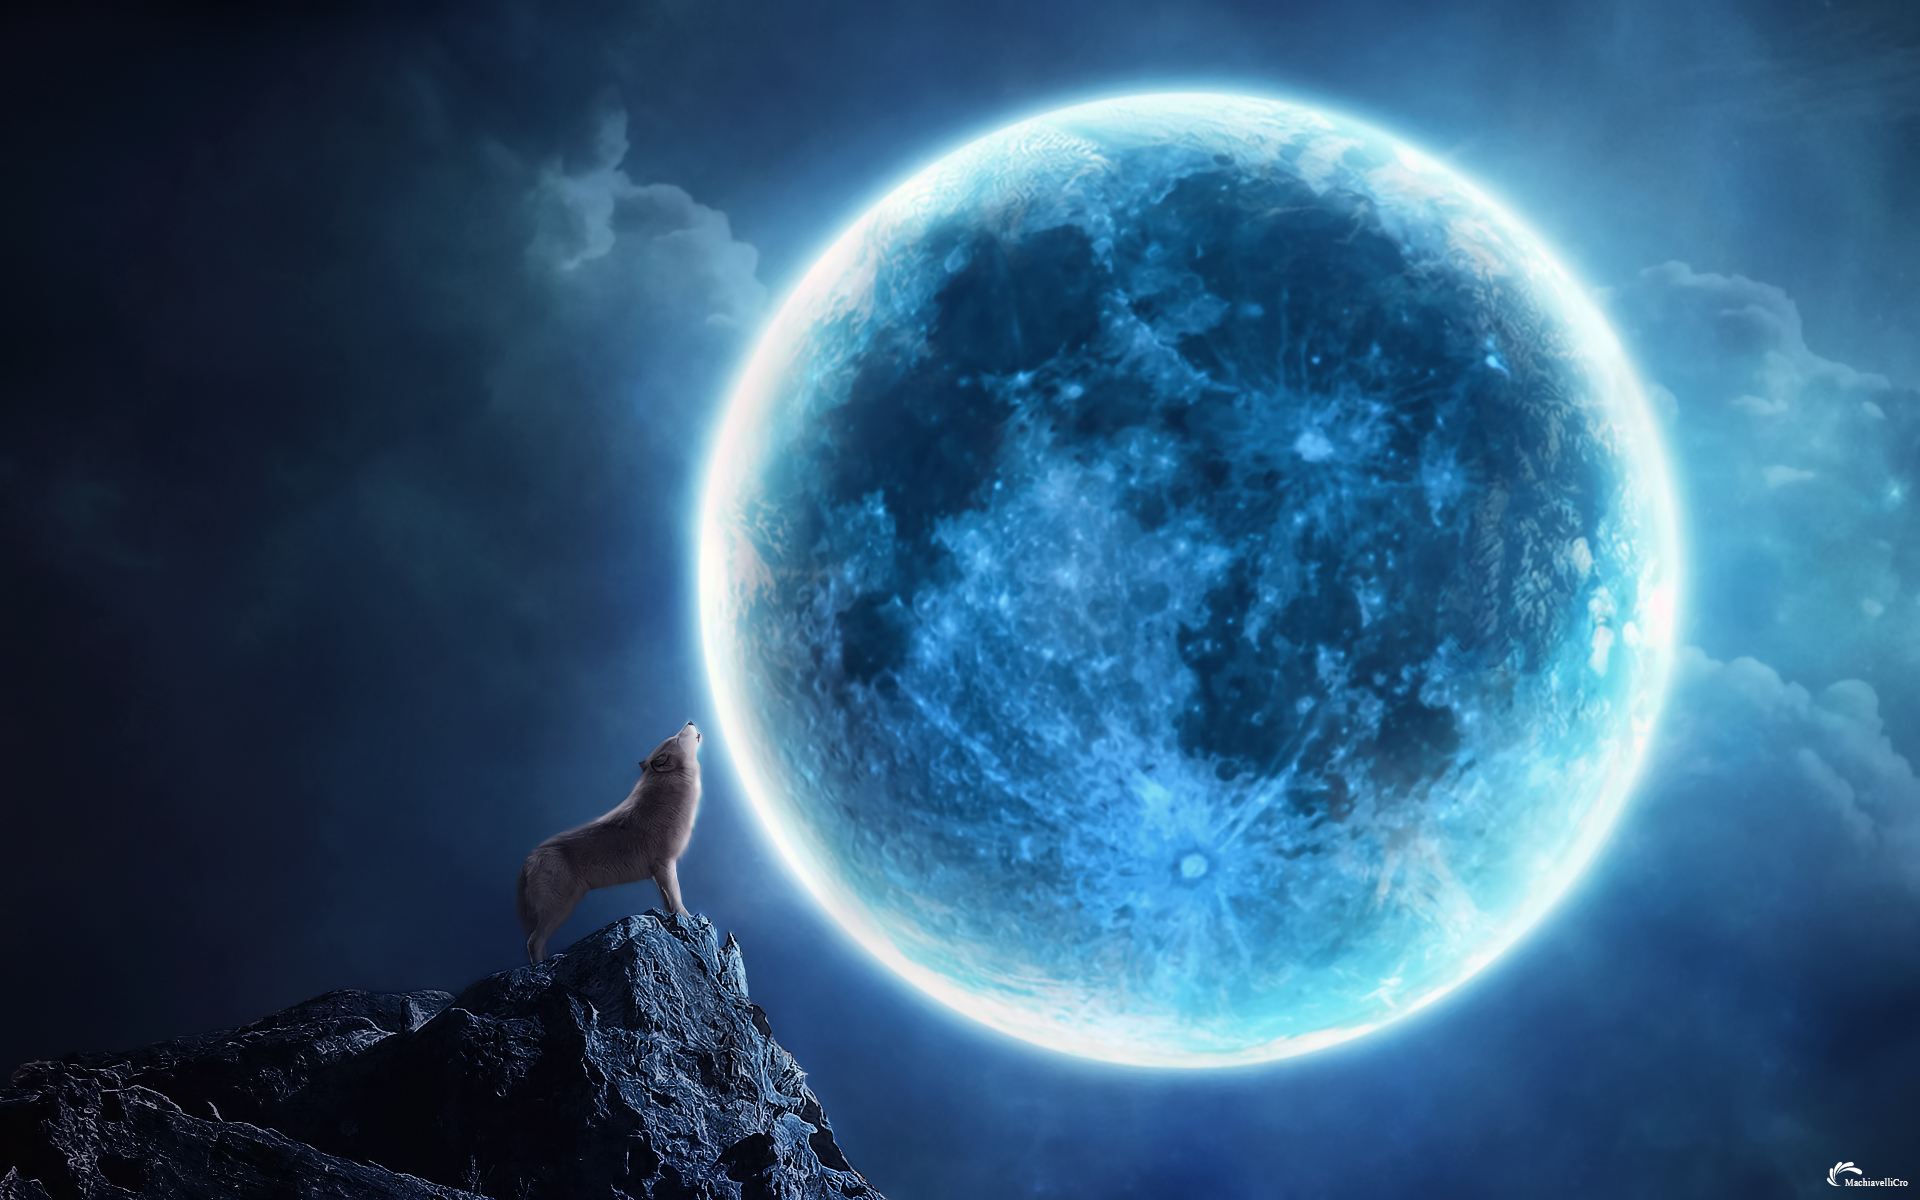 Howling Cg Digtal Art Fantasy Animals Dogs Wolves Wolf Landscapes Night Moonlight Moon Sky Clouds Magic Mood Wallpaper